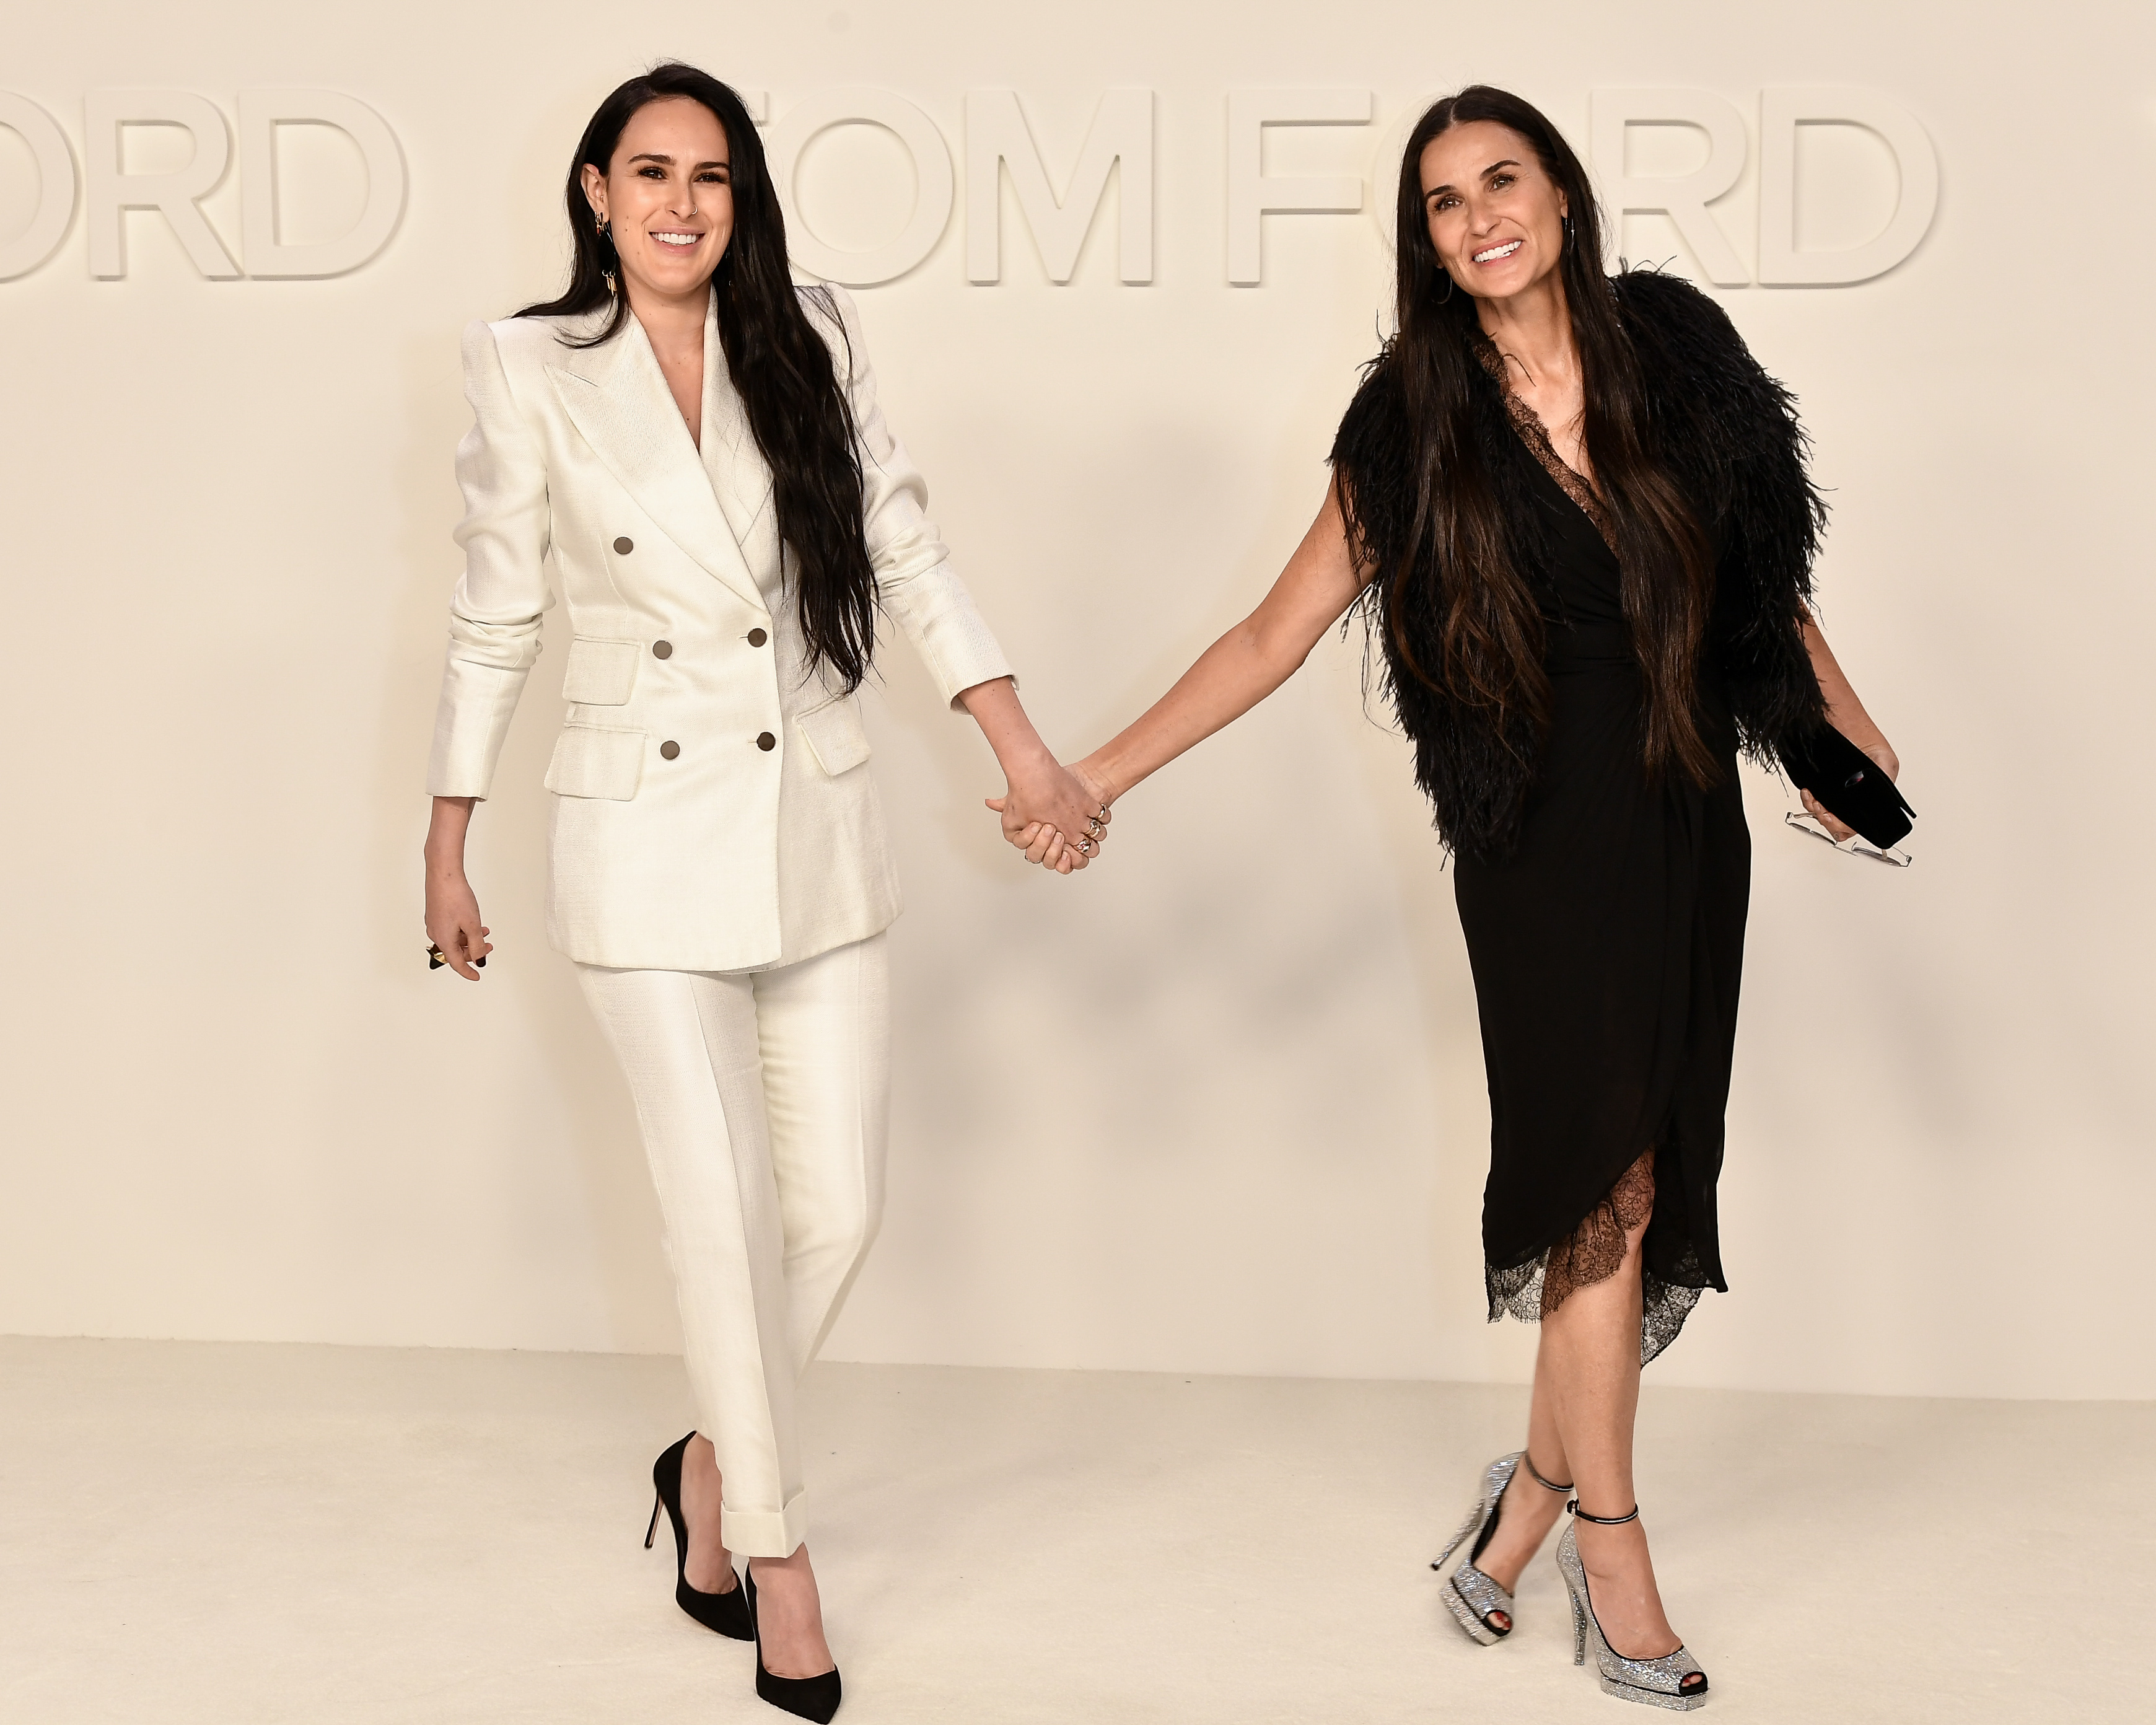 Rumer Willis and Demi Moore Tom Ford show February 2020